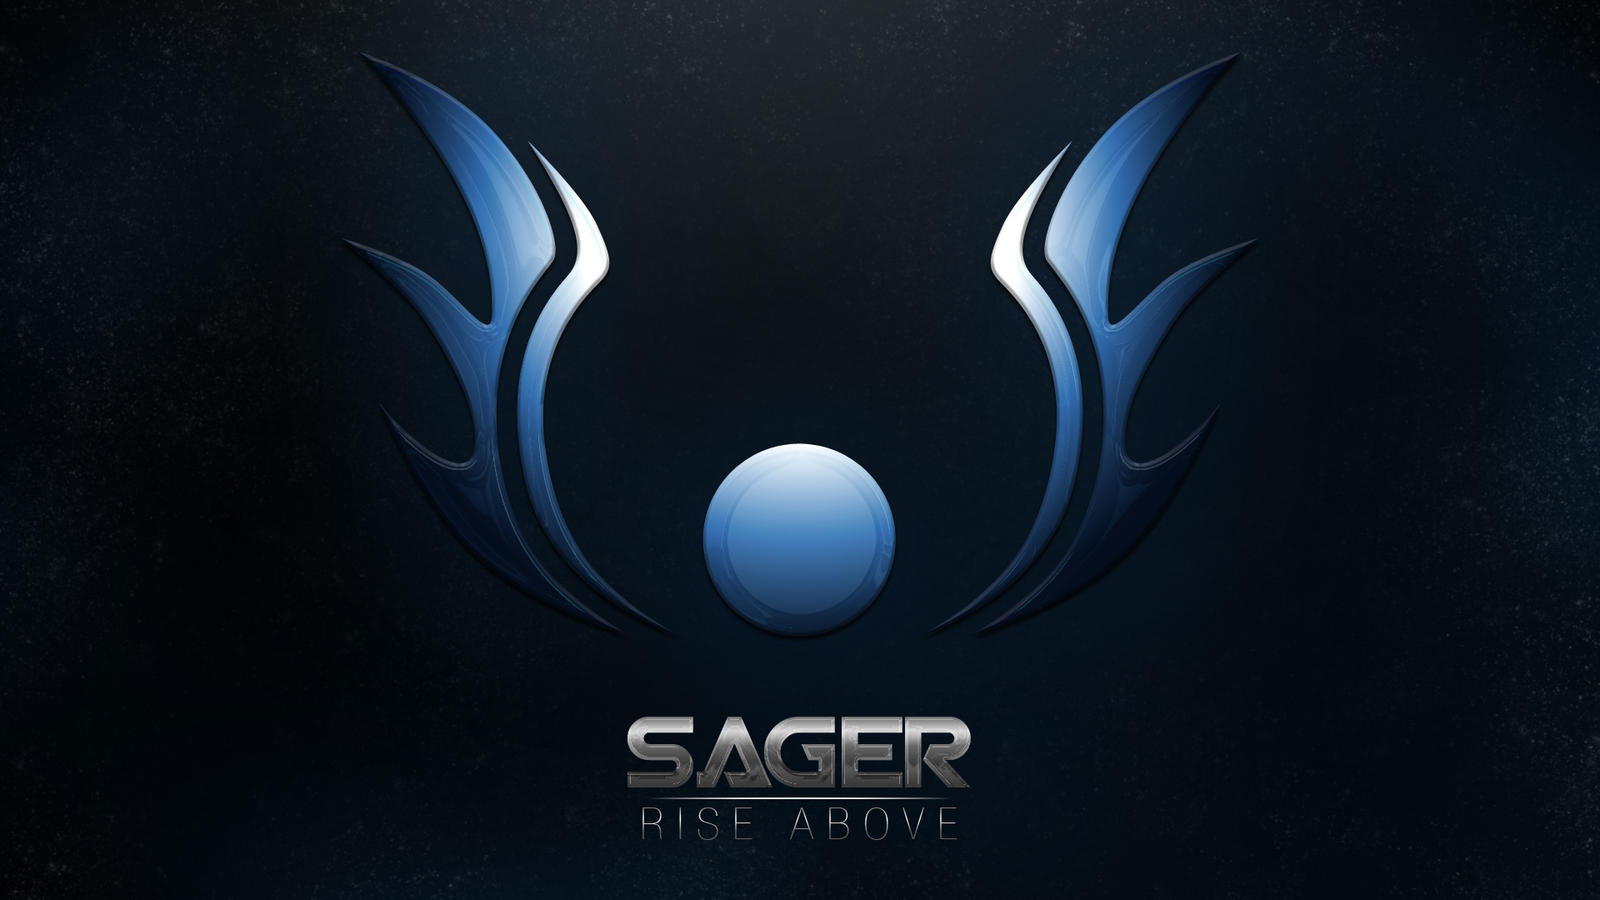 Sager Rise Above Wallpaper